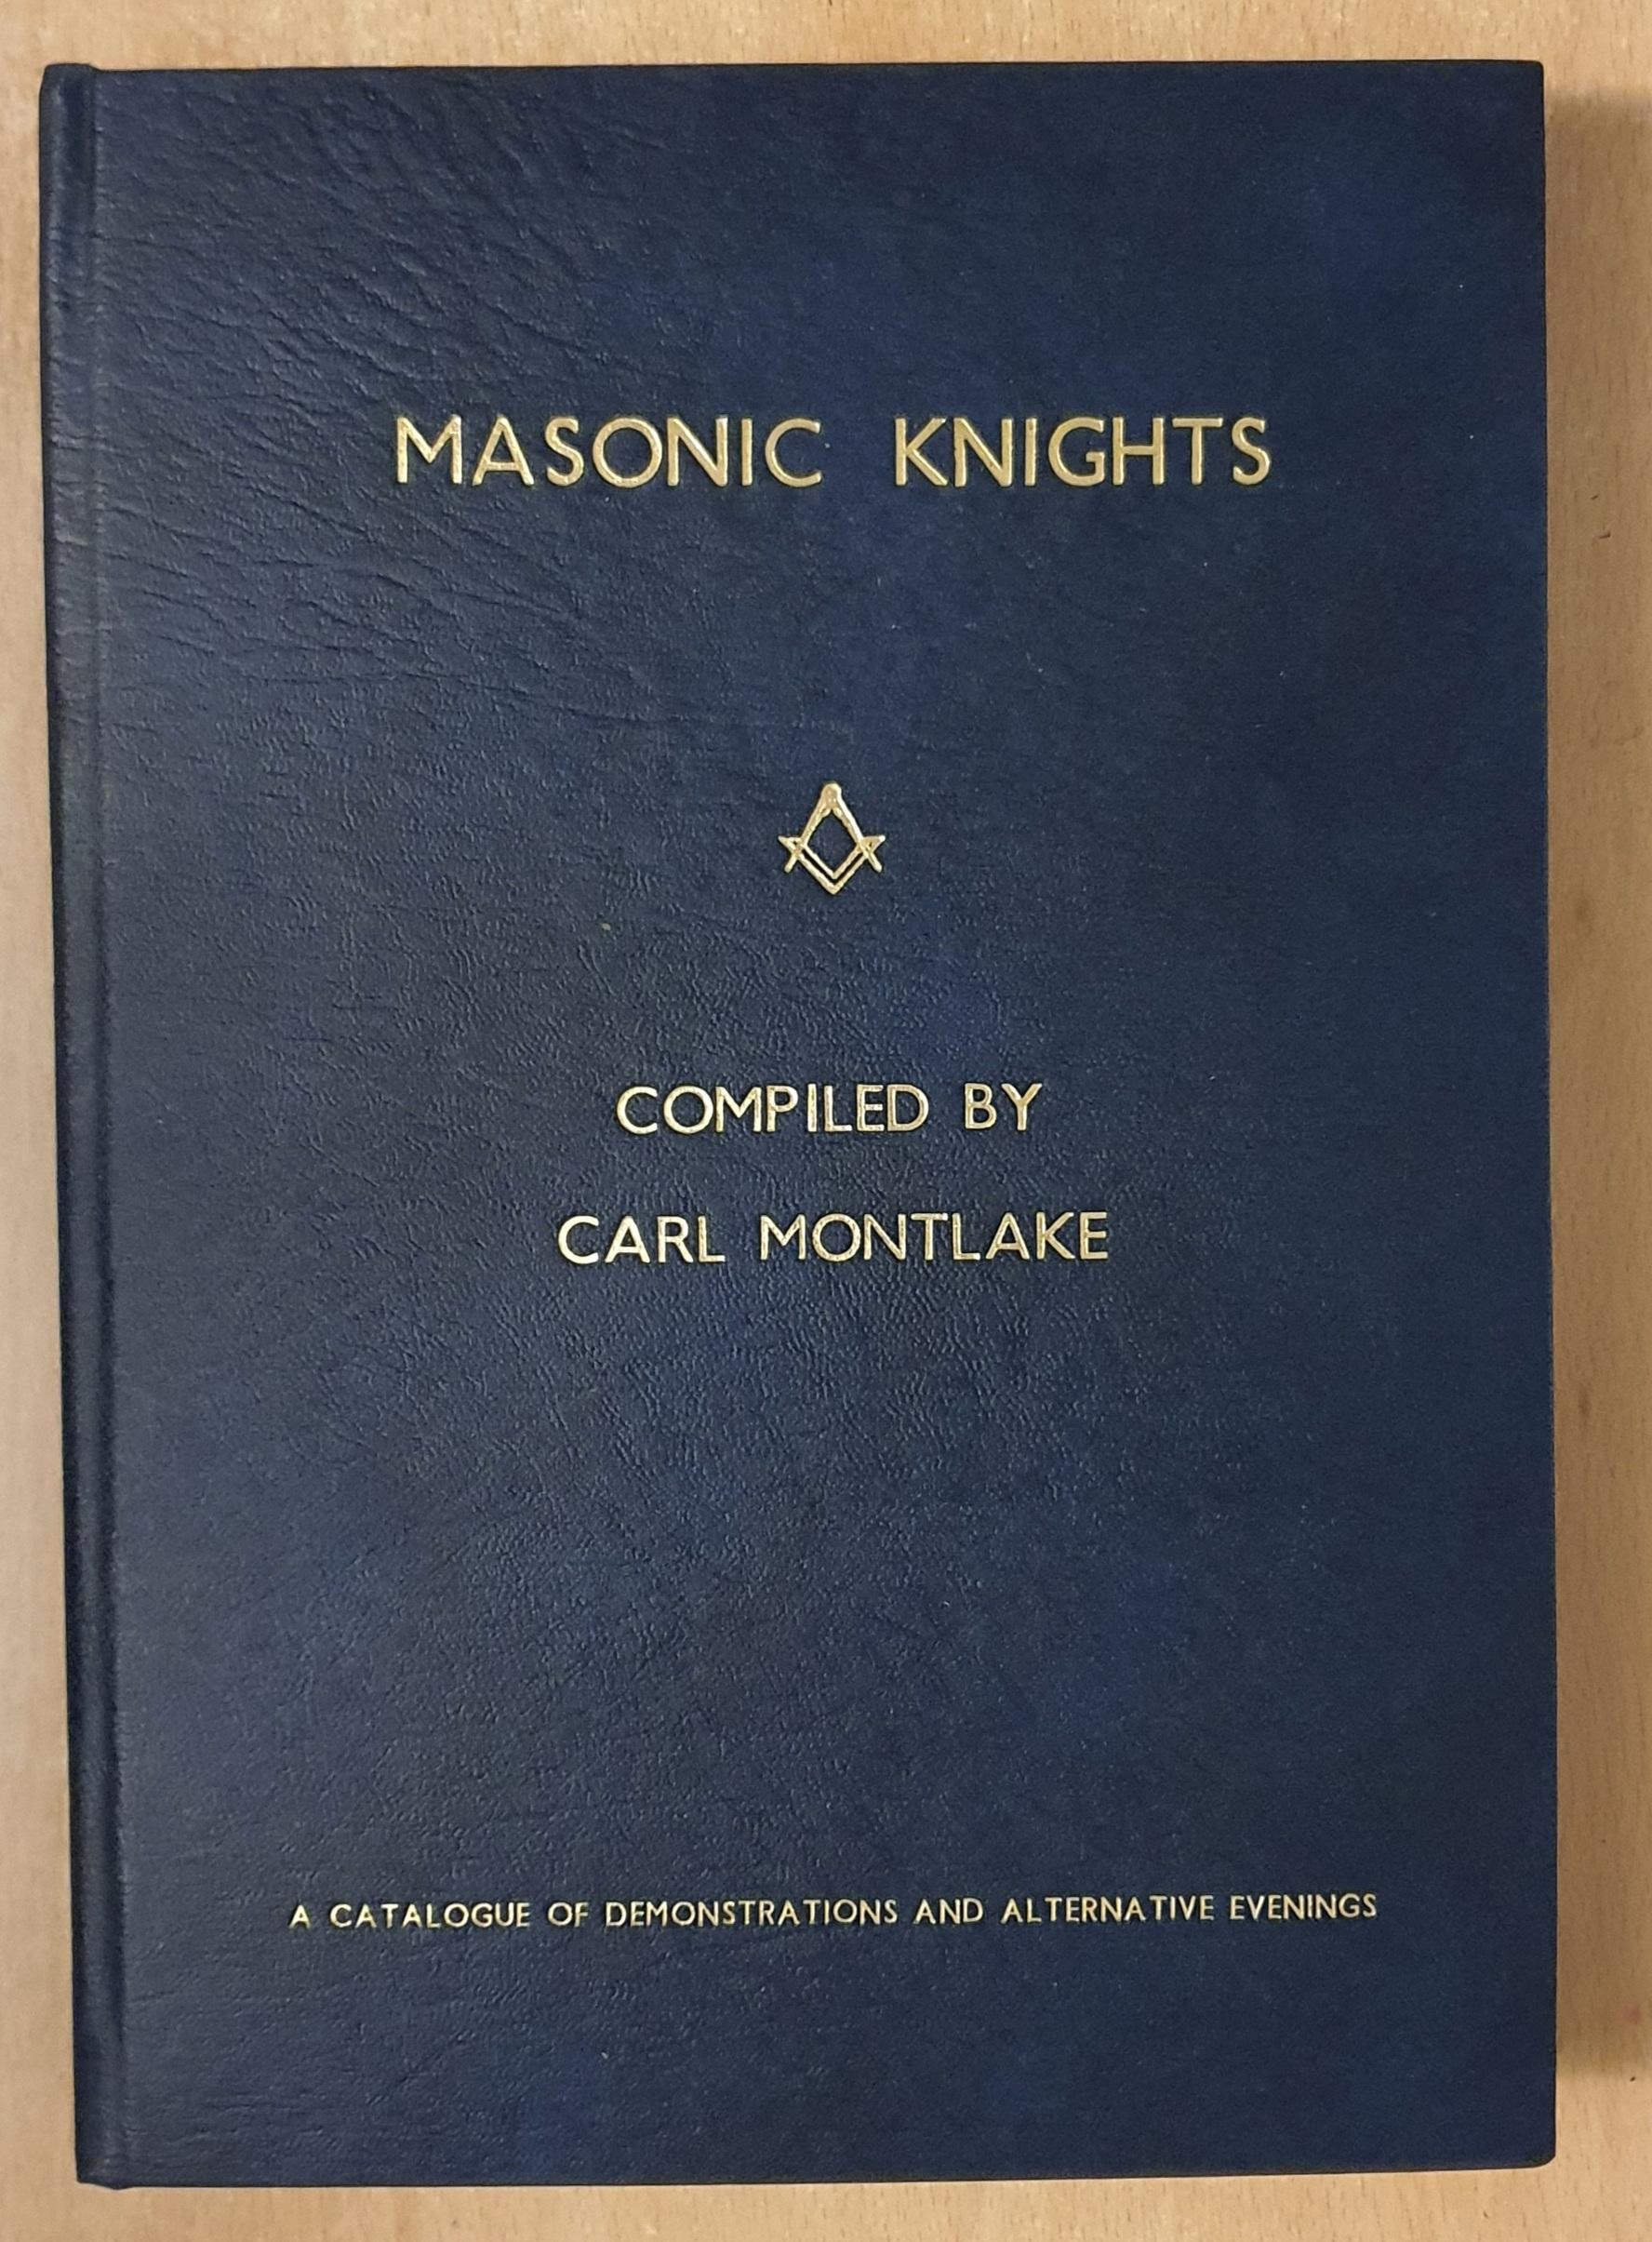 Image for Masonic Knights Volume One: A Catalogue Of Demonstrations And Alternative Evenings. Dedicated by Volunteer Lodge, 2905, compiled by Carl Montlake.